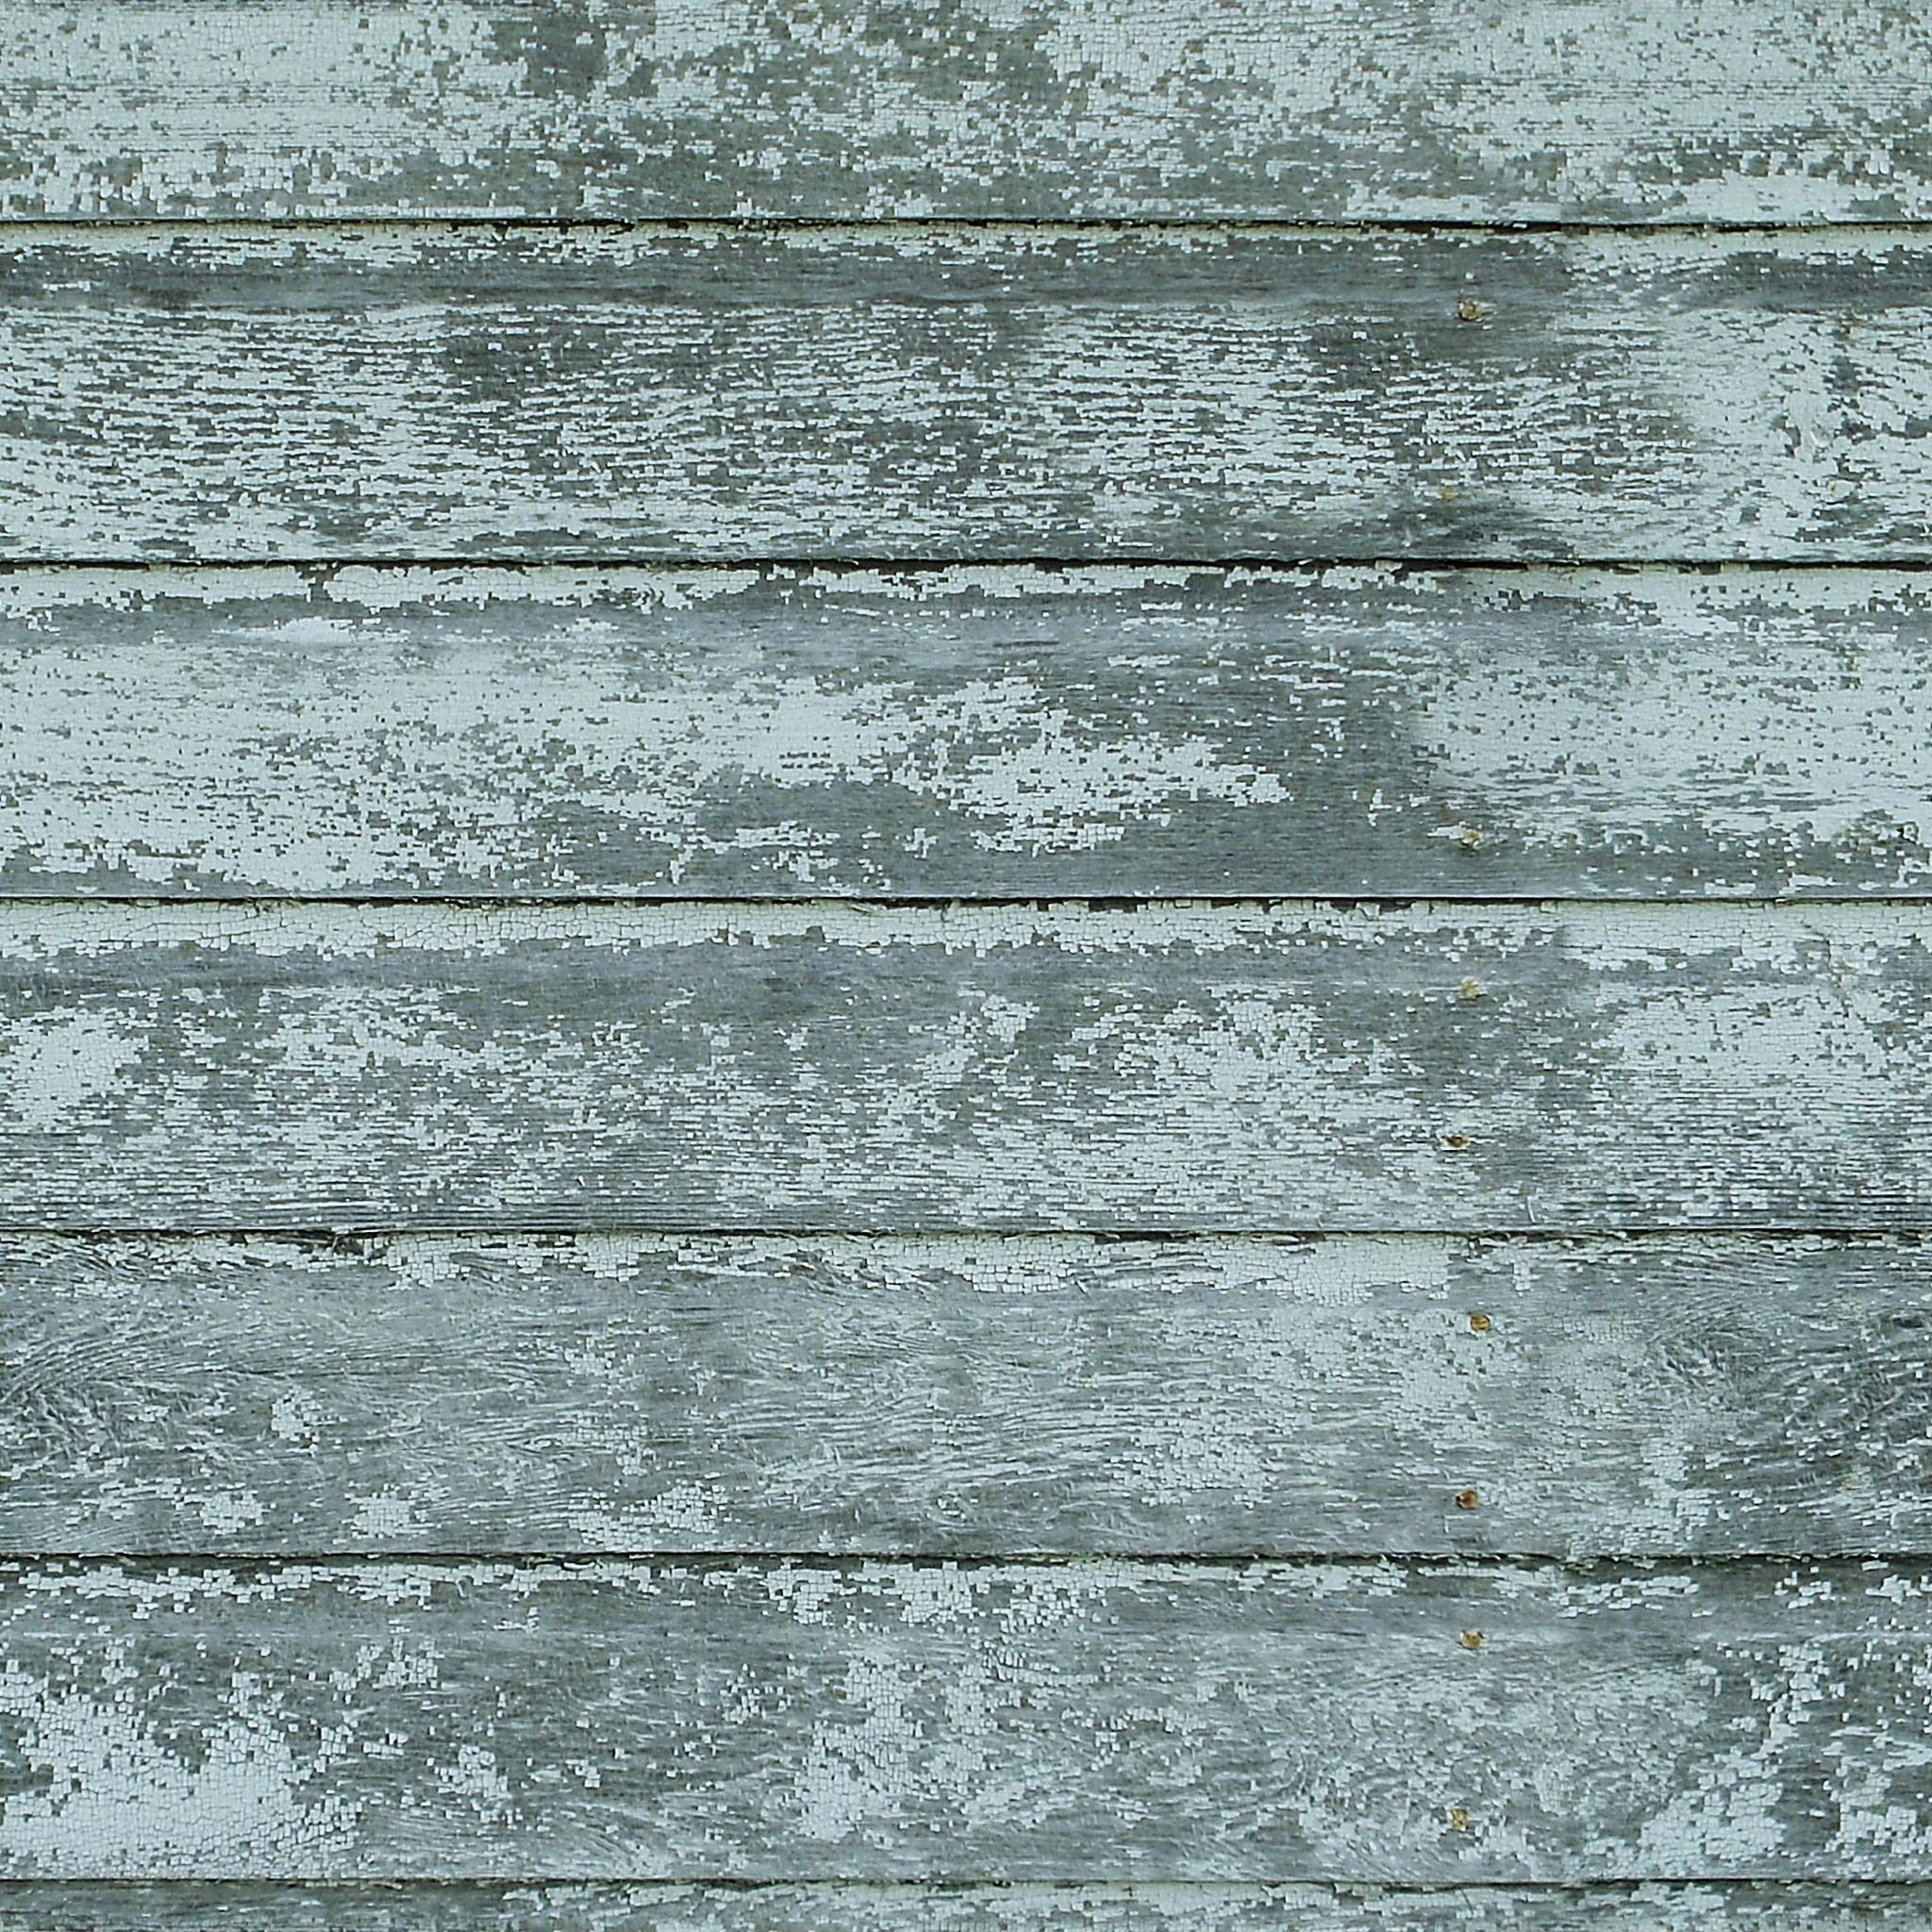 Wall paint texture seamless - White Painted Wood Texture Seamless Chipped Paint On Wall Seamless Texture